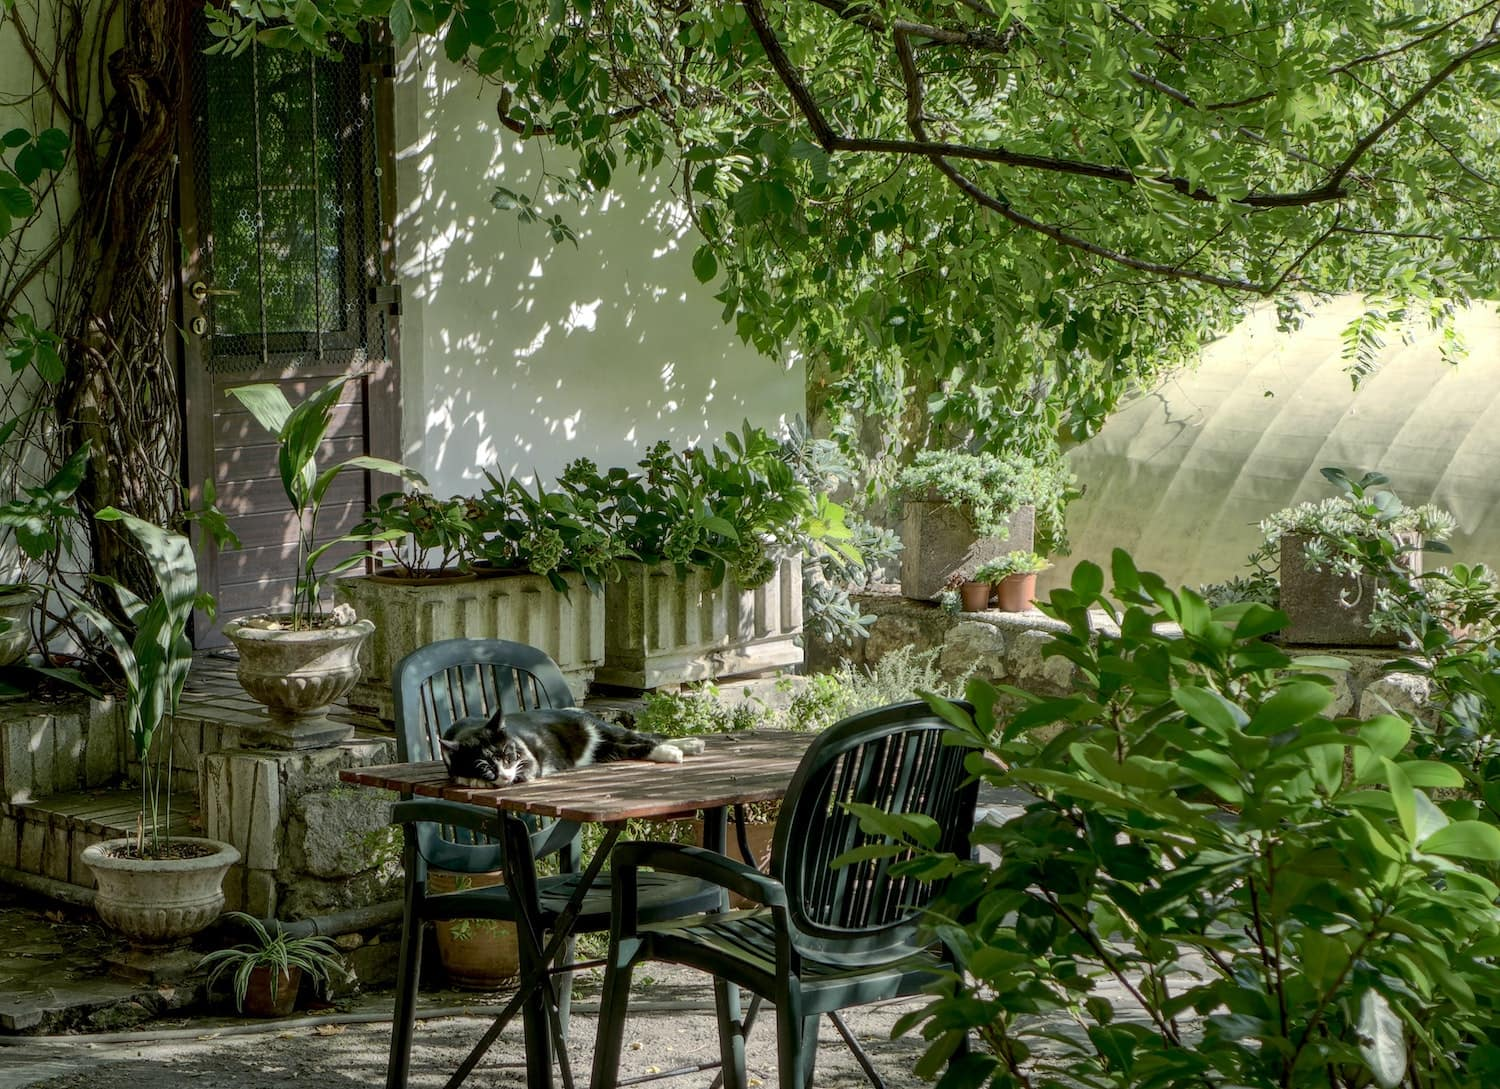 Table and chairs in a garden